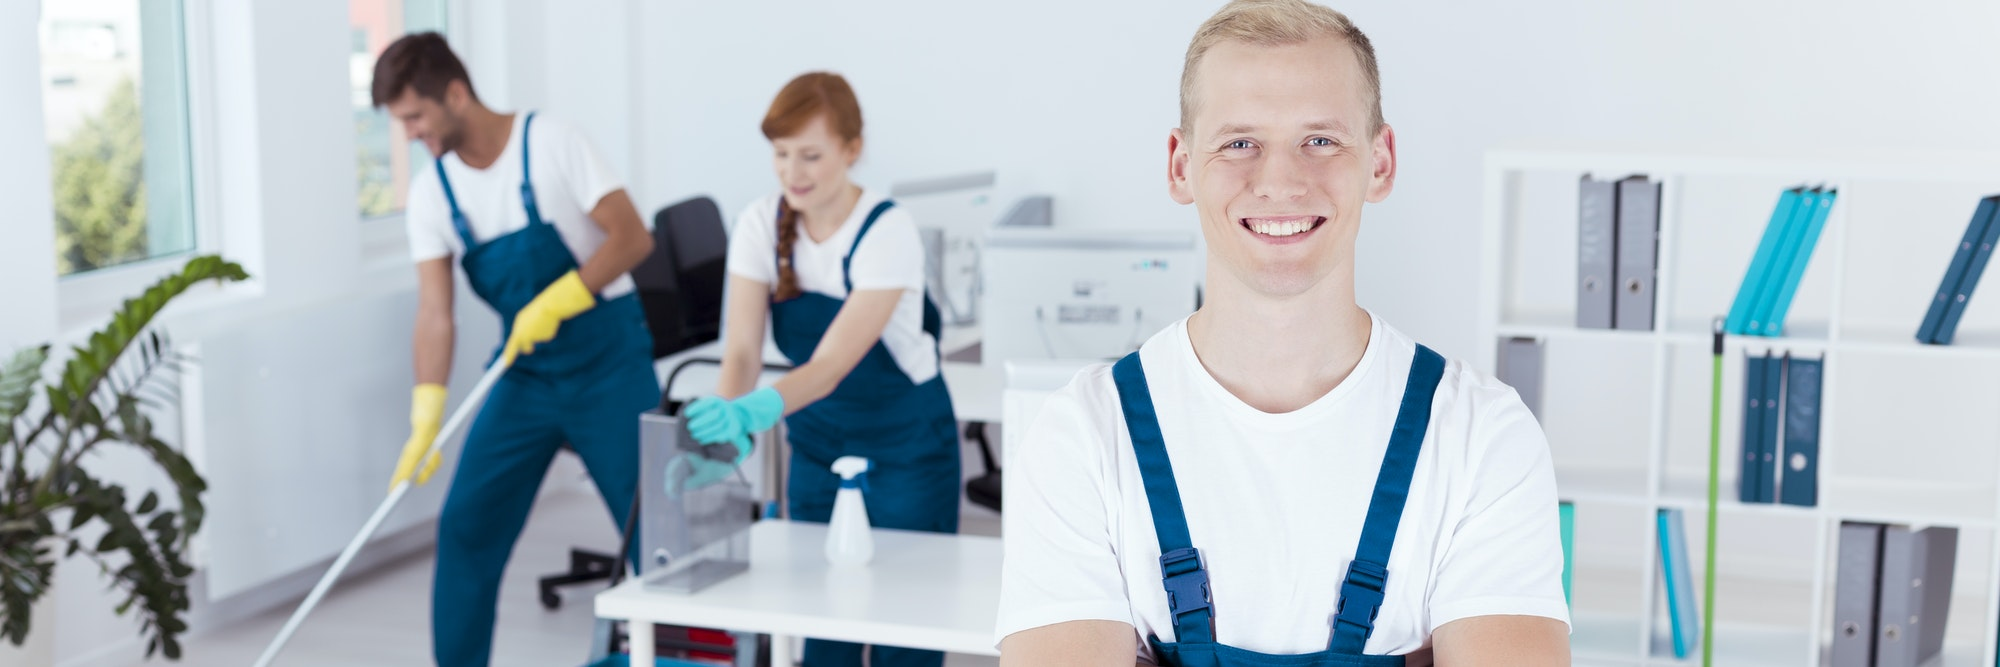 Cooperation in cleaning offices